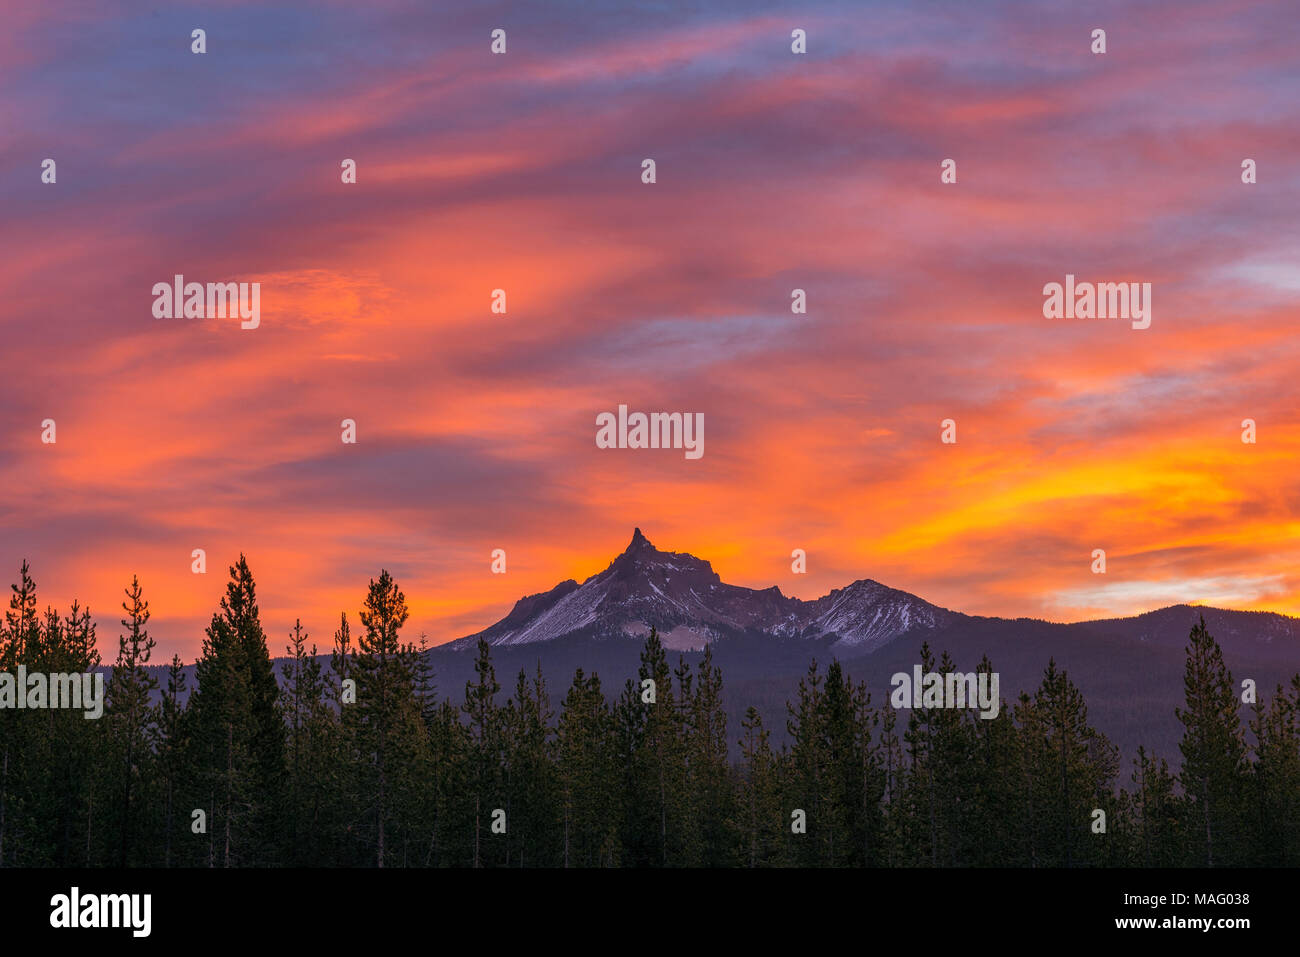 Dawn, Mount Thielsen, Mount Thielsen Wüste, Umpqua National Forest, Oregon Stockbild